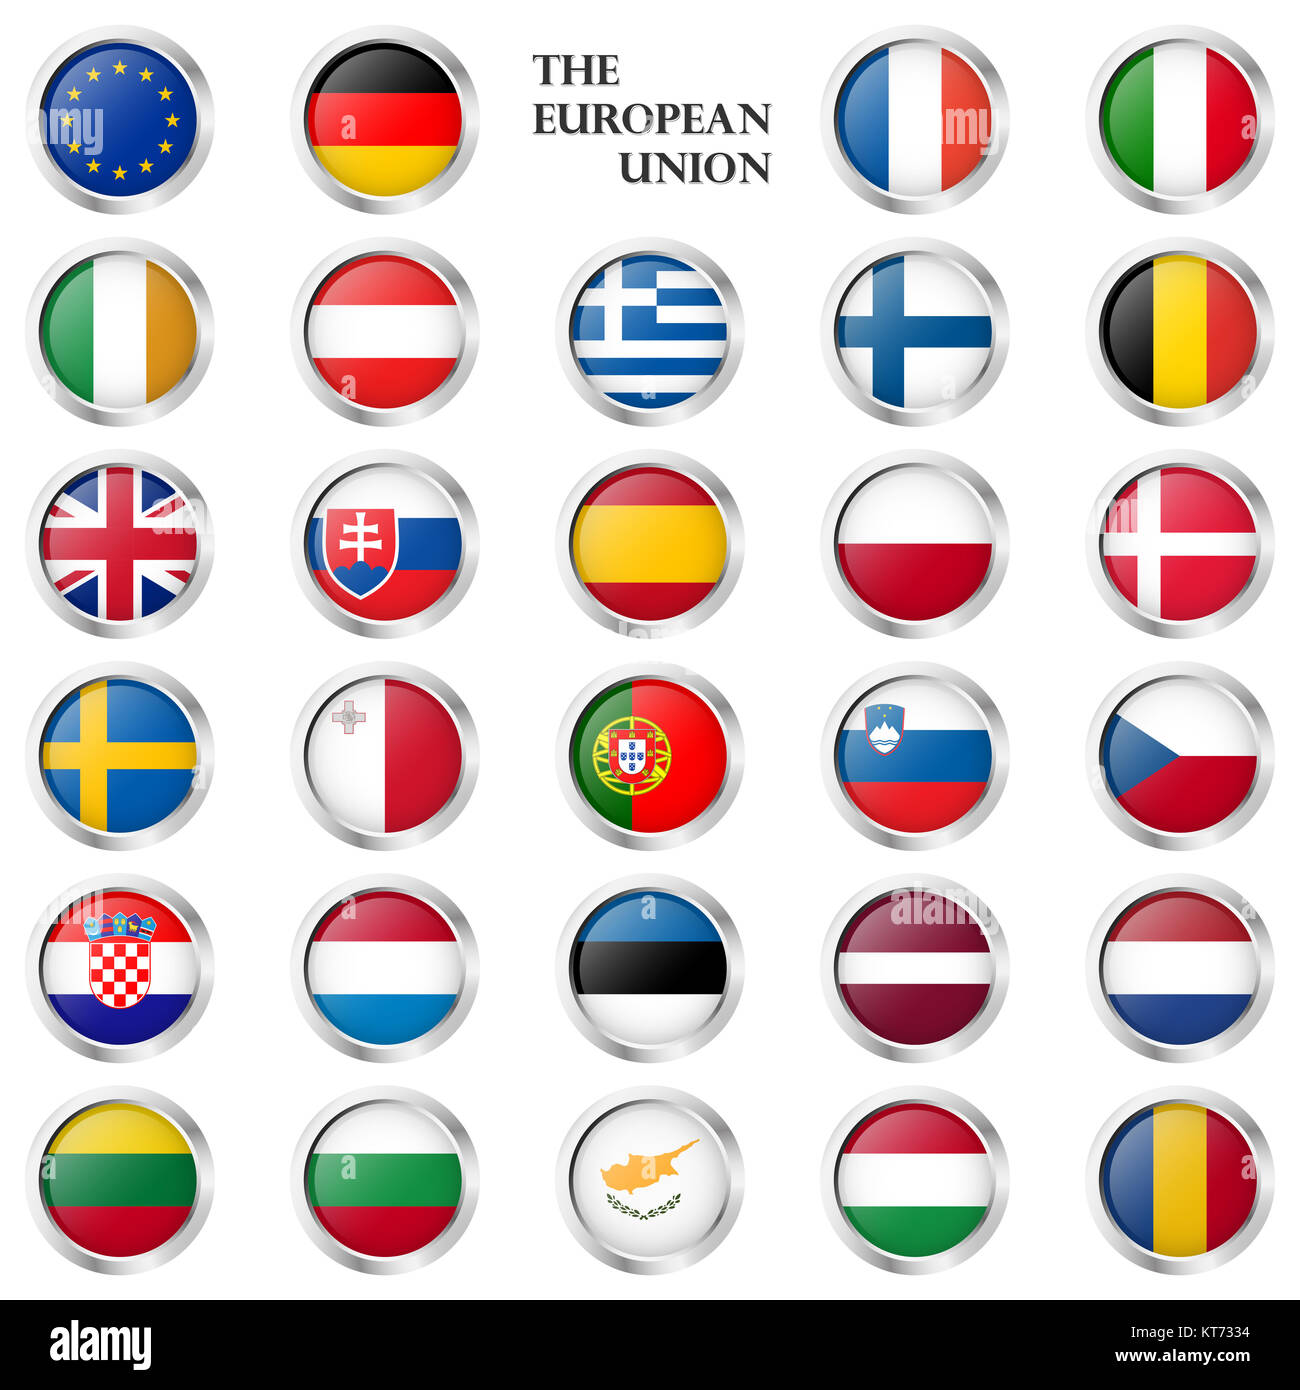 collection of round buttons with different EU country flags and silver frame - Stock Image